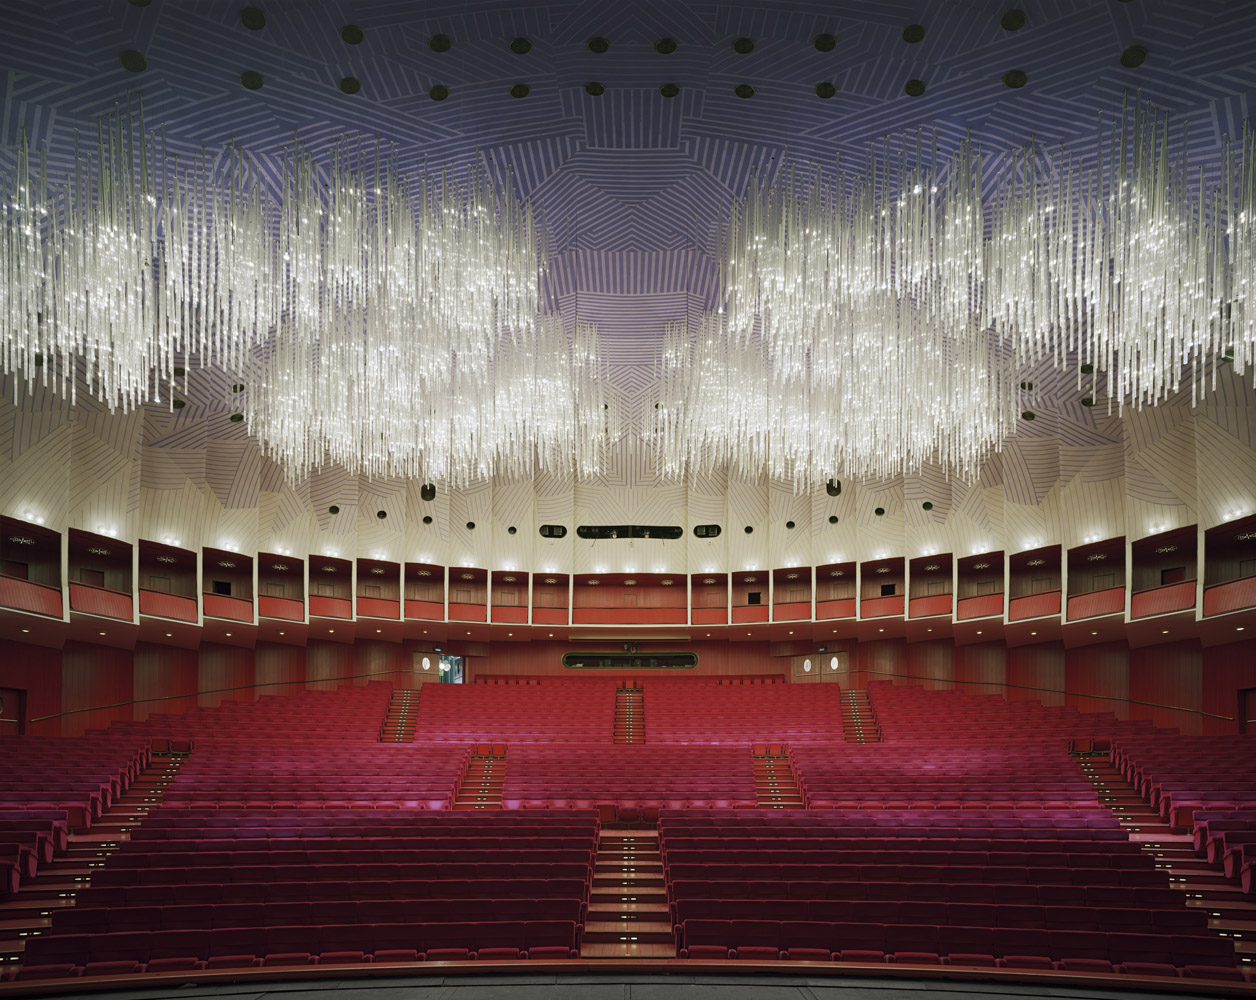 Teatro Regio, Italy, 2010, by David Leventi. Fujicolor Crystal Archive print of the interior, mounted to Dibond.